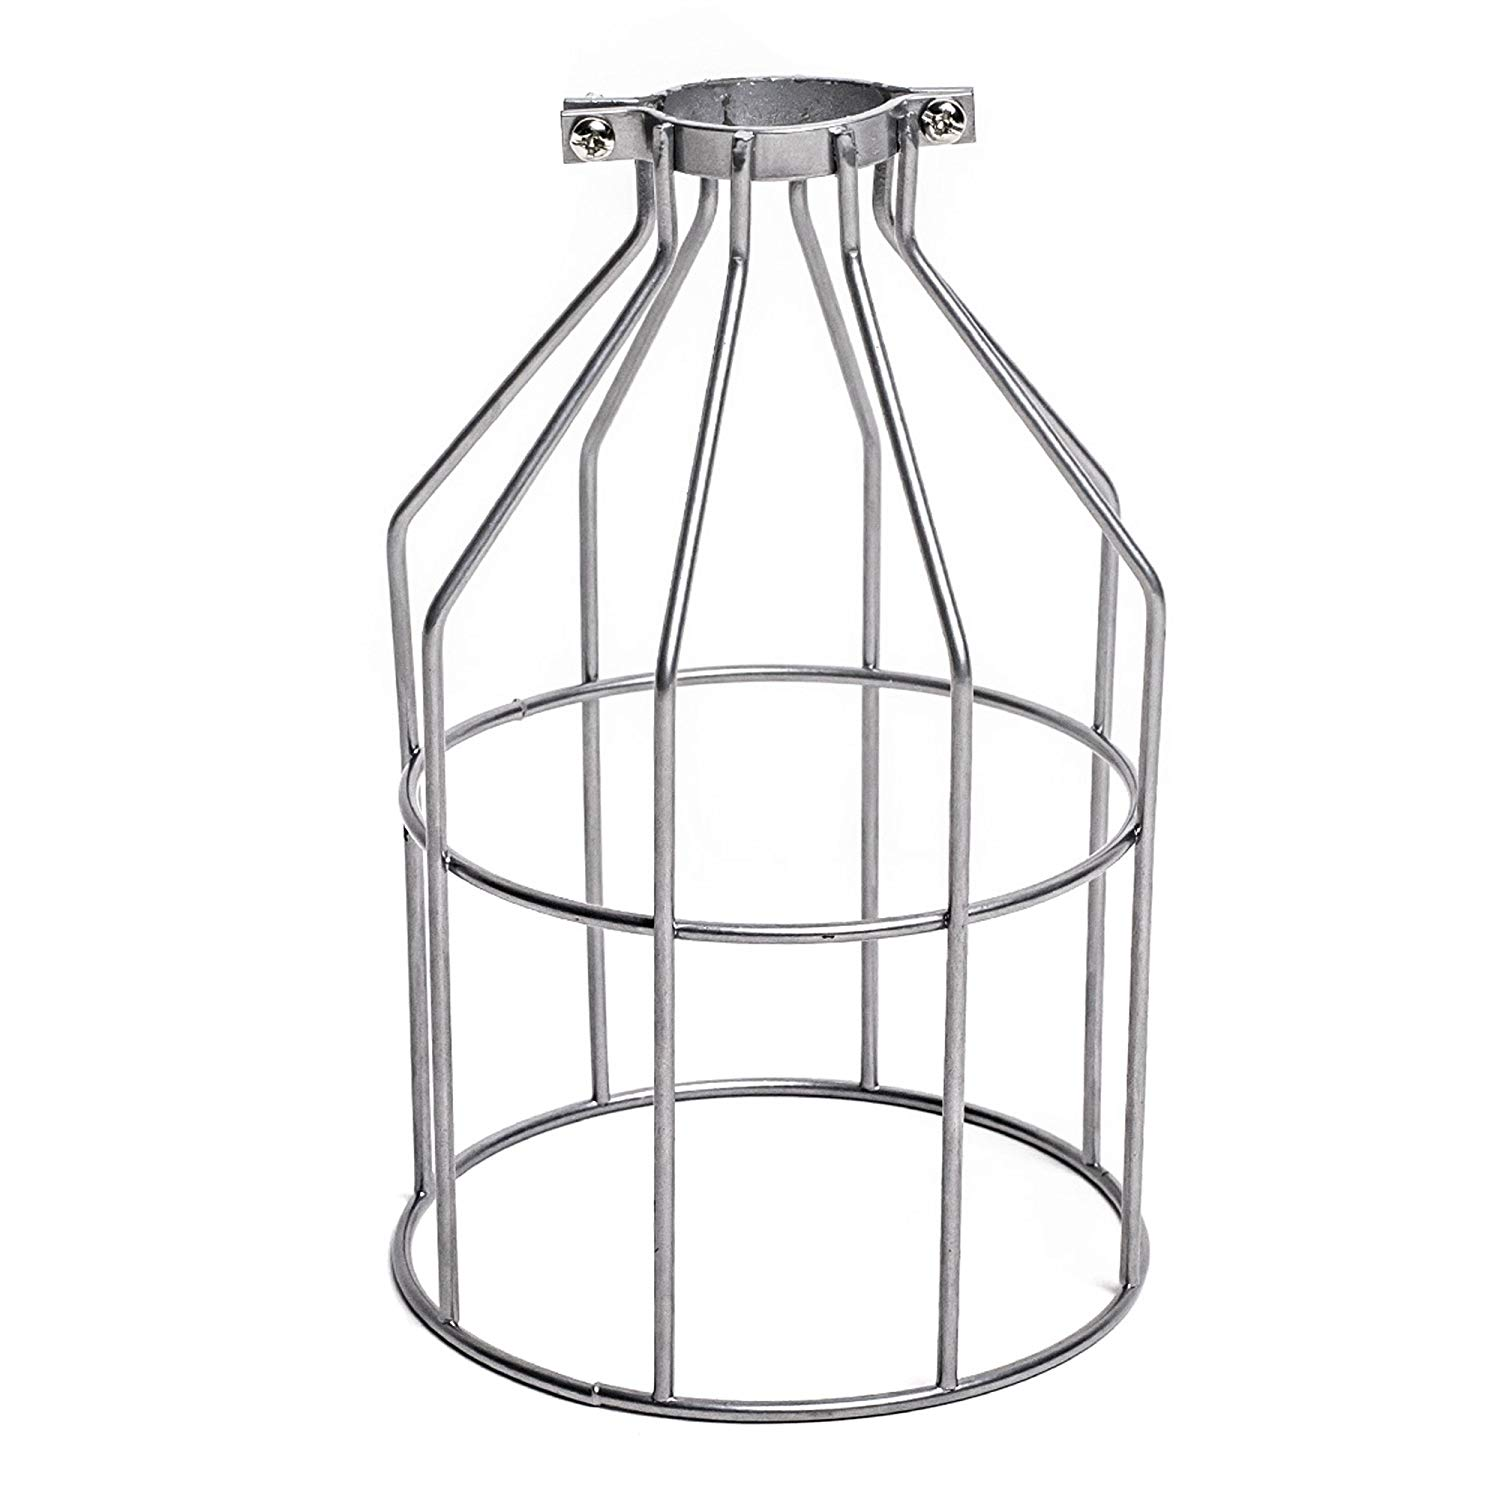 Upidlighting Metal Bulb Guard, Clamp On Steel Lamp Cage for Hanging Pendant Lights and Vintage Lamp Holders,Open Style Black Industrial Wire Iron Bird Cage (Silver)